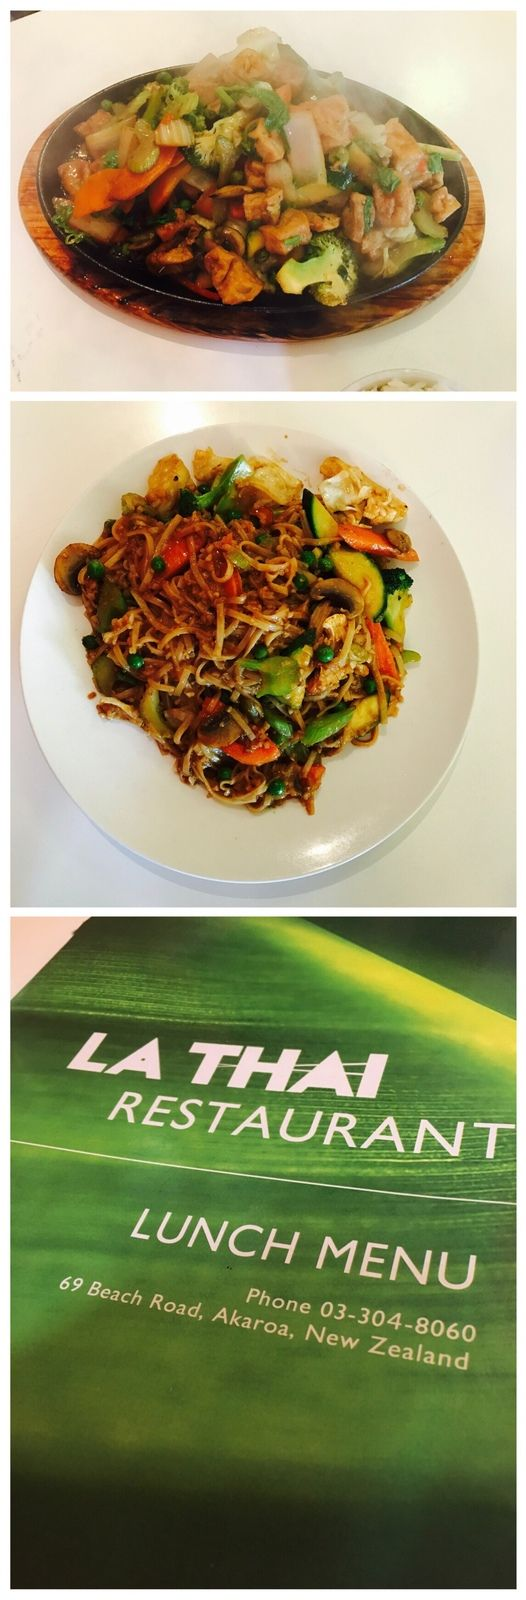 """Found a Thai in Akaroa that knew how to make food vegan! Stir fried vegetables and tofu in peanut sauce and """"The Sizzler"""". Best name ever! 😋"""